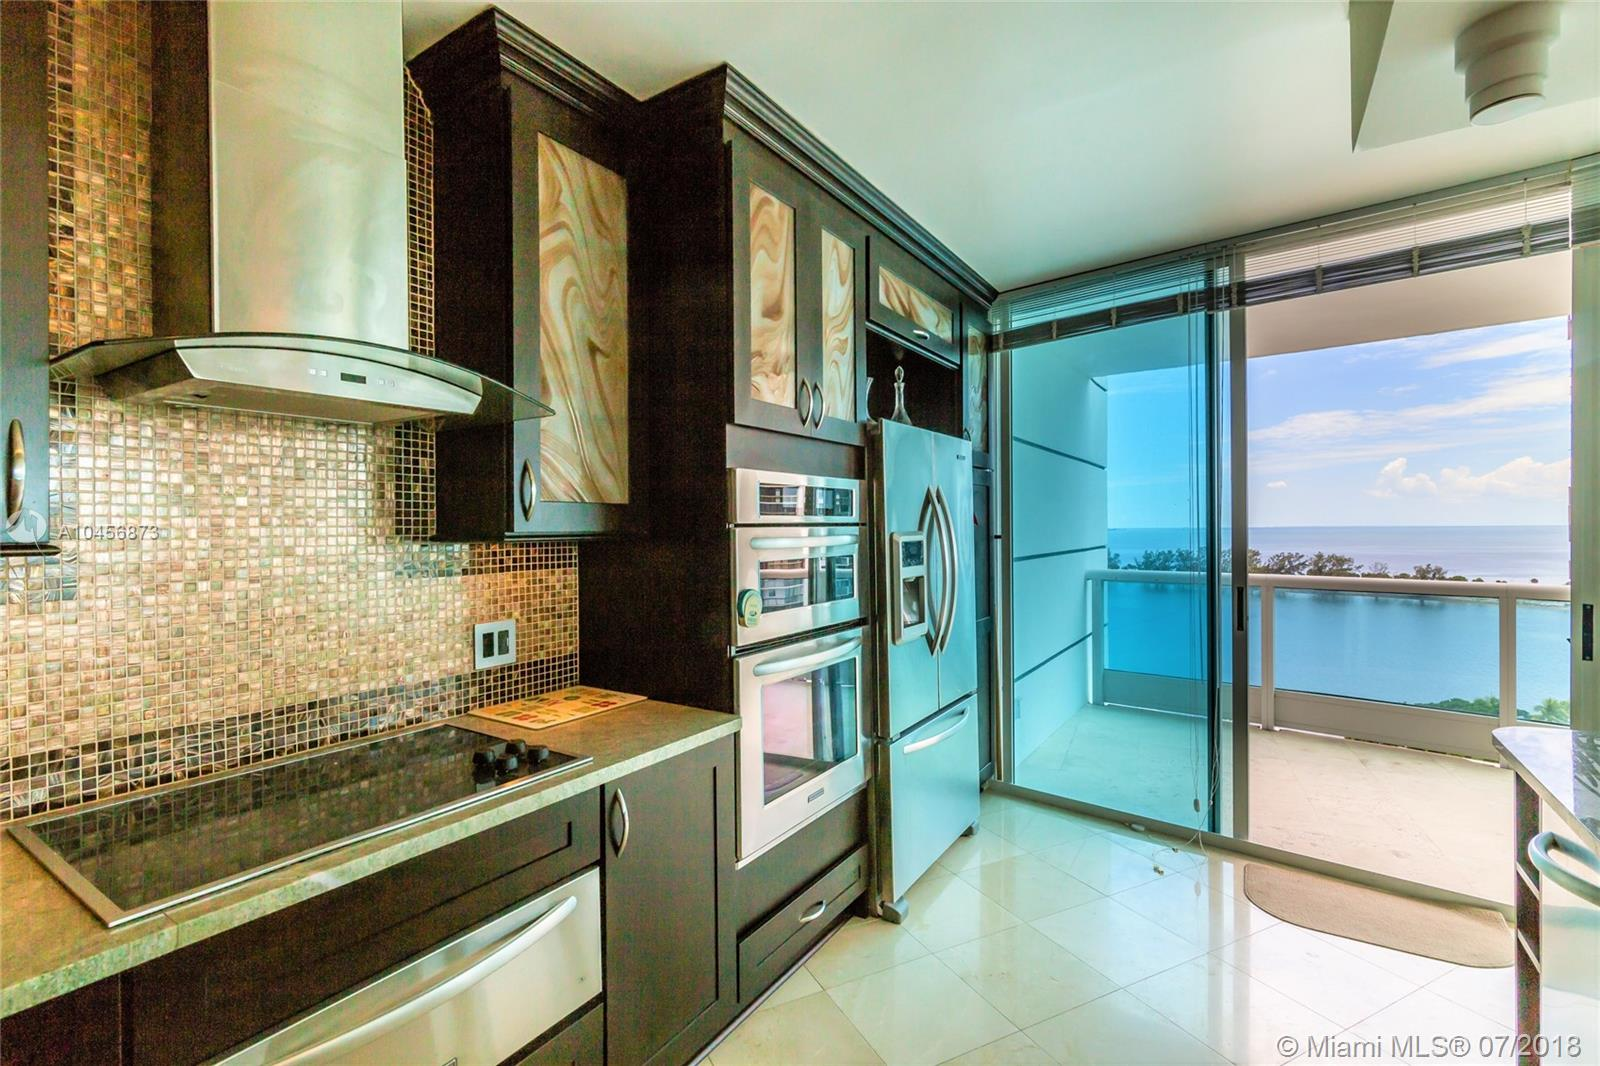 2127 Brickell Avenue, Miami, FL 33129, Bristol Tower Condominium #1702, Brickell, Miami A10456873 image #11